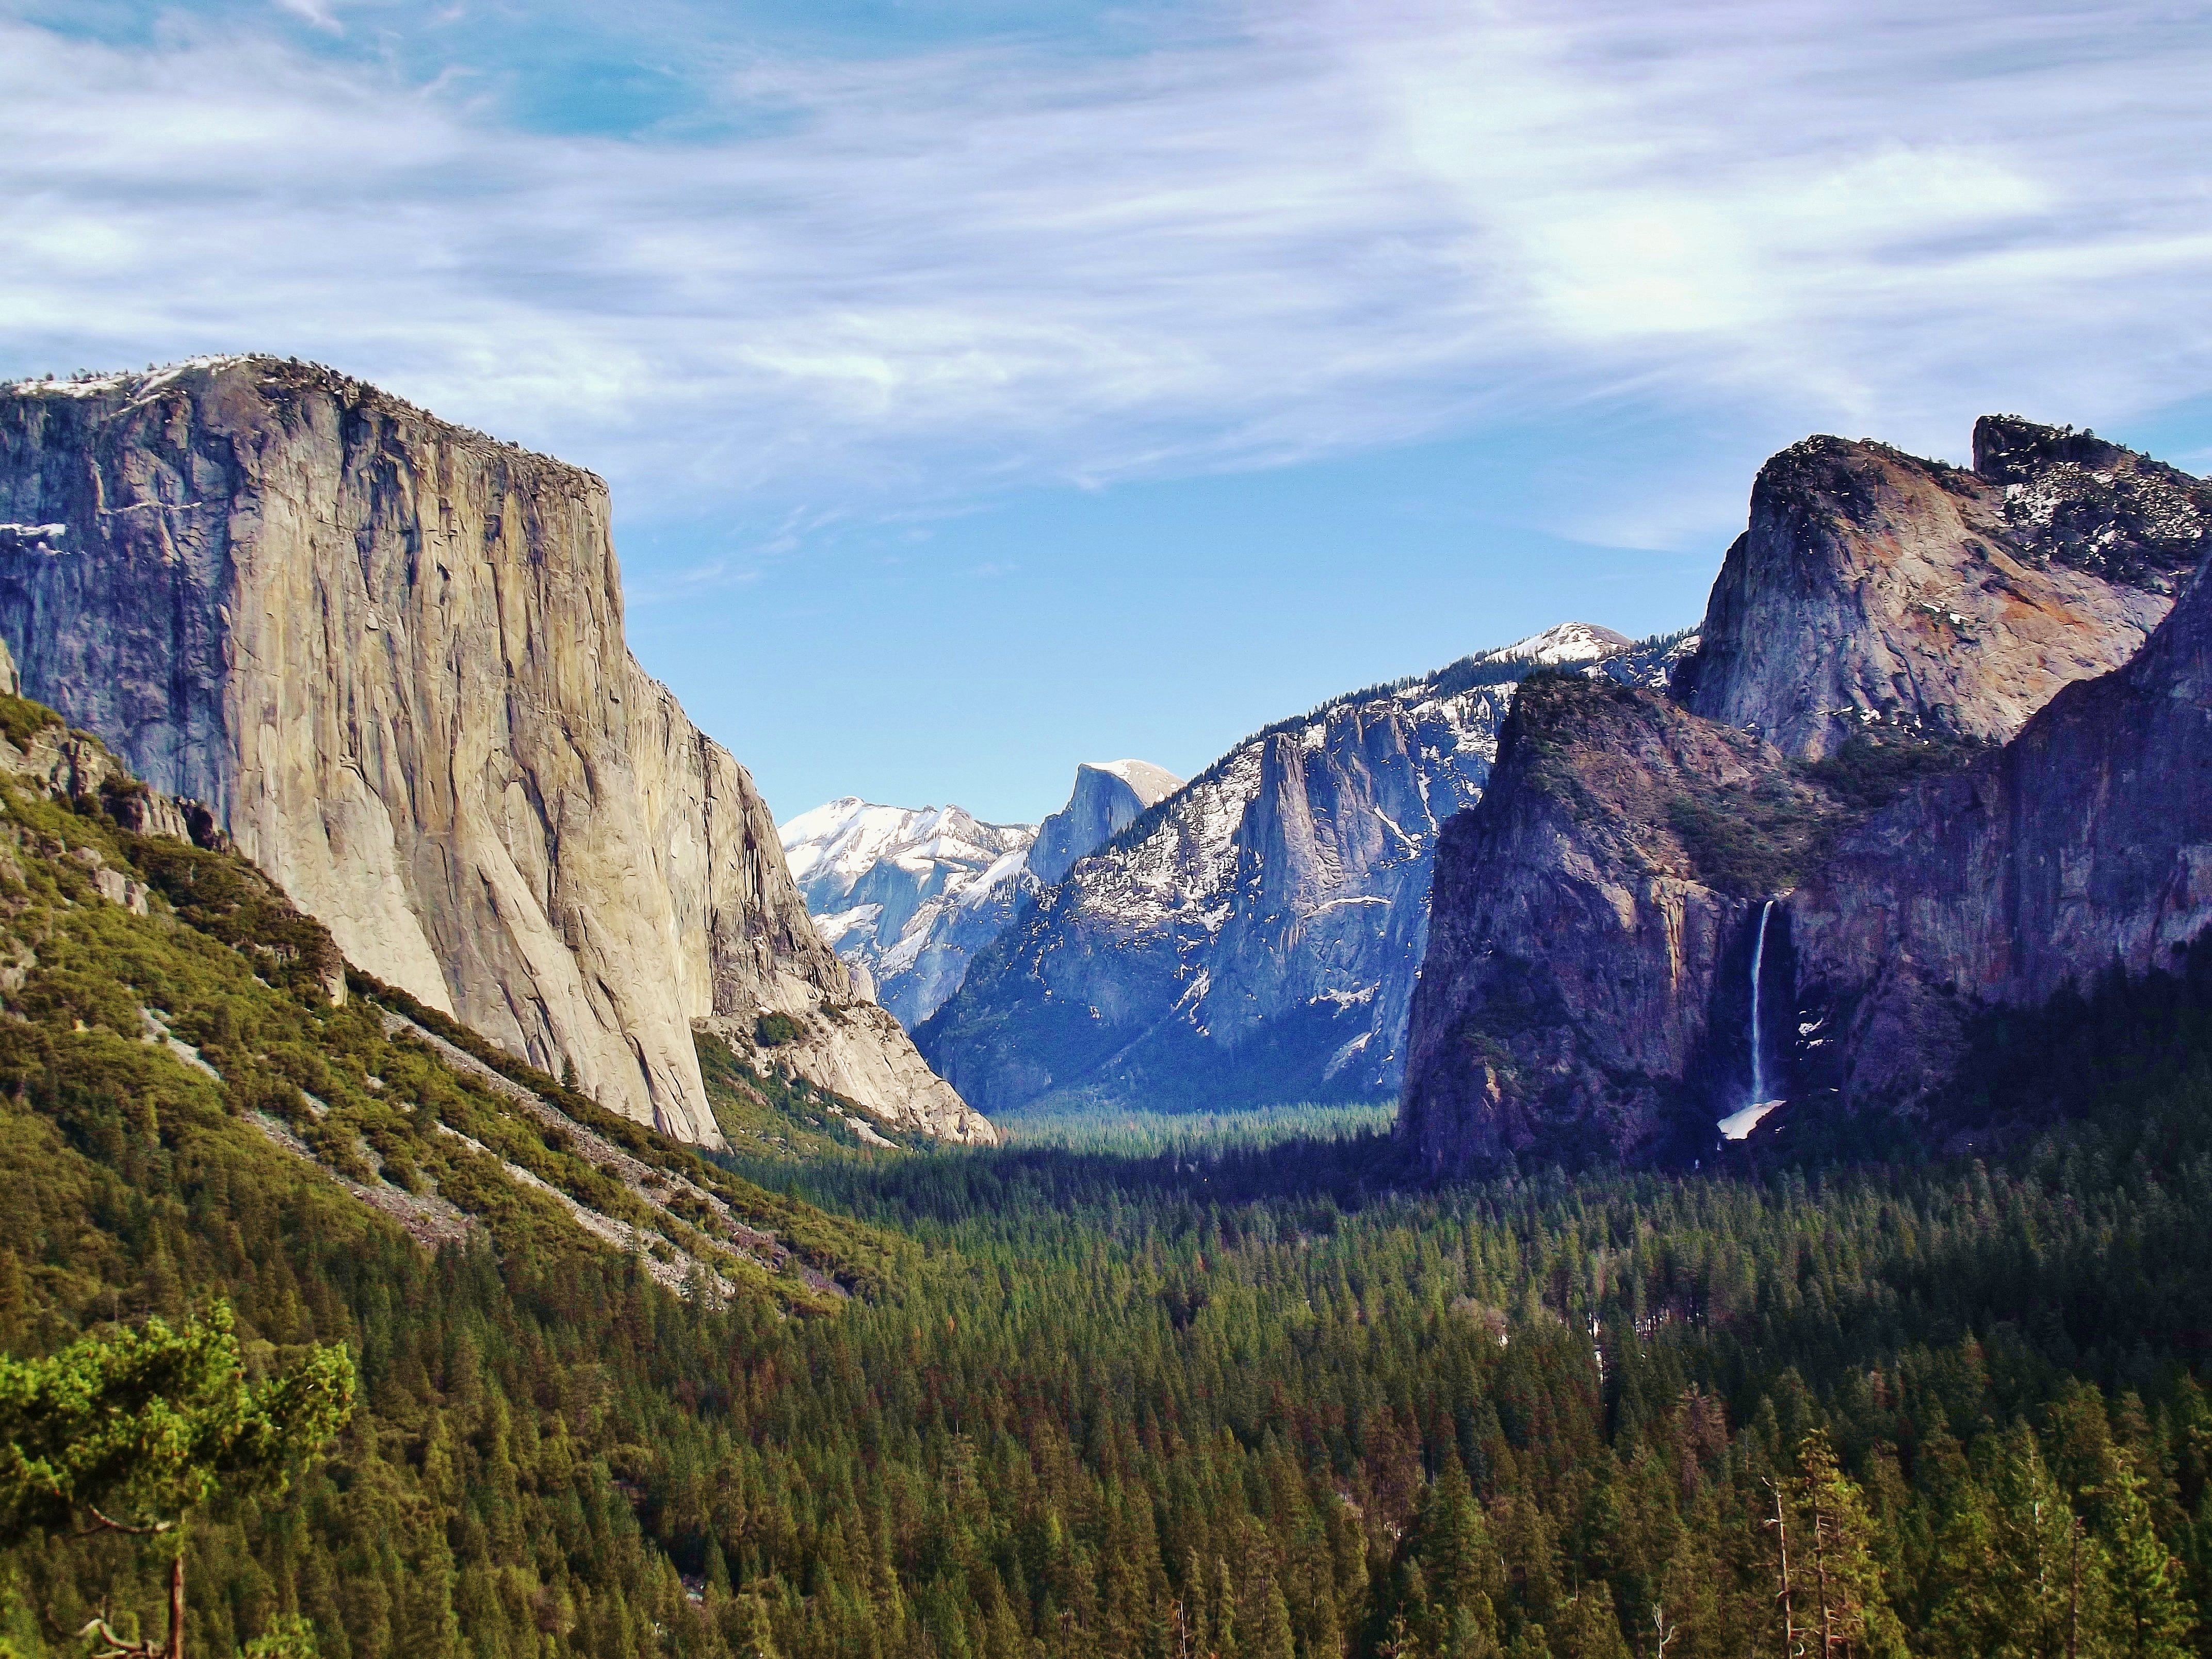 Yosemite Valley - Wikipedia on map of bryce canyon, map of carlsbad, map of north cascades park, map of national parks, map of wilmington, map of bakersfield, map of corona park, map of lincoln park, map of anza borrego park, map of monterey, map of death valley park, map of marysville park, map of sequoia park, map of yellowstone park, map & directions yosemite, map of hollywood, map of sierra nevada, map of washington, map of monument valley, map of grand canyon park,